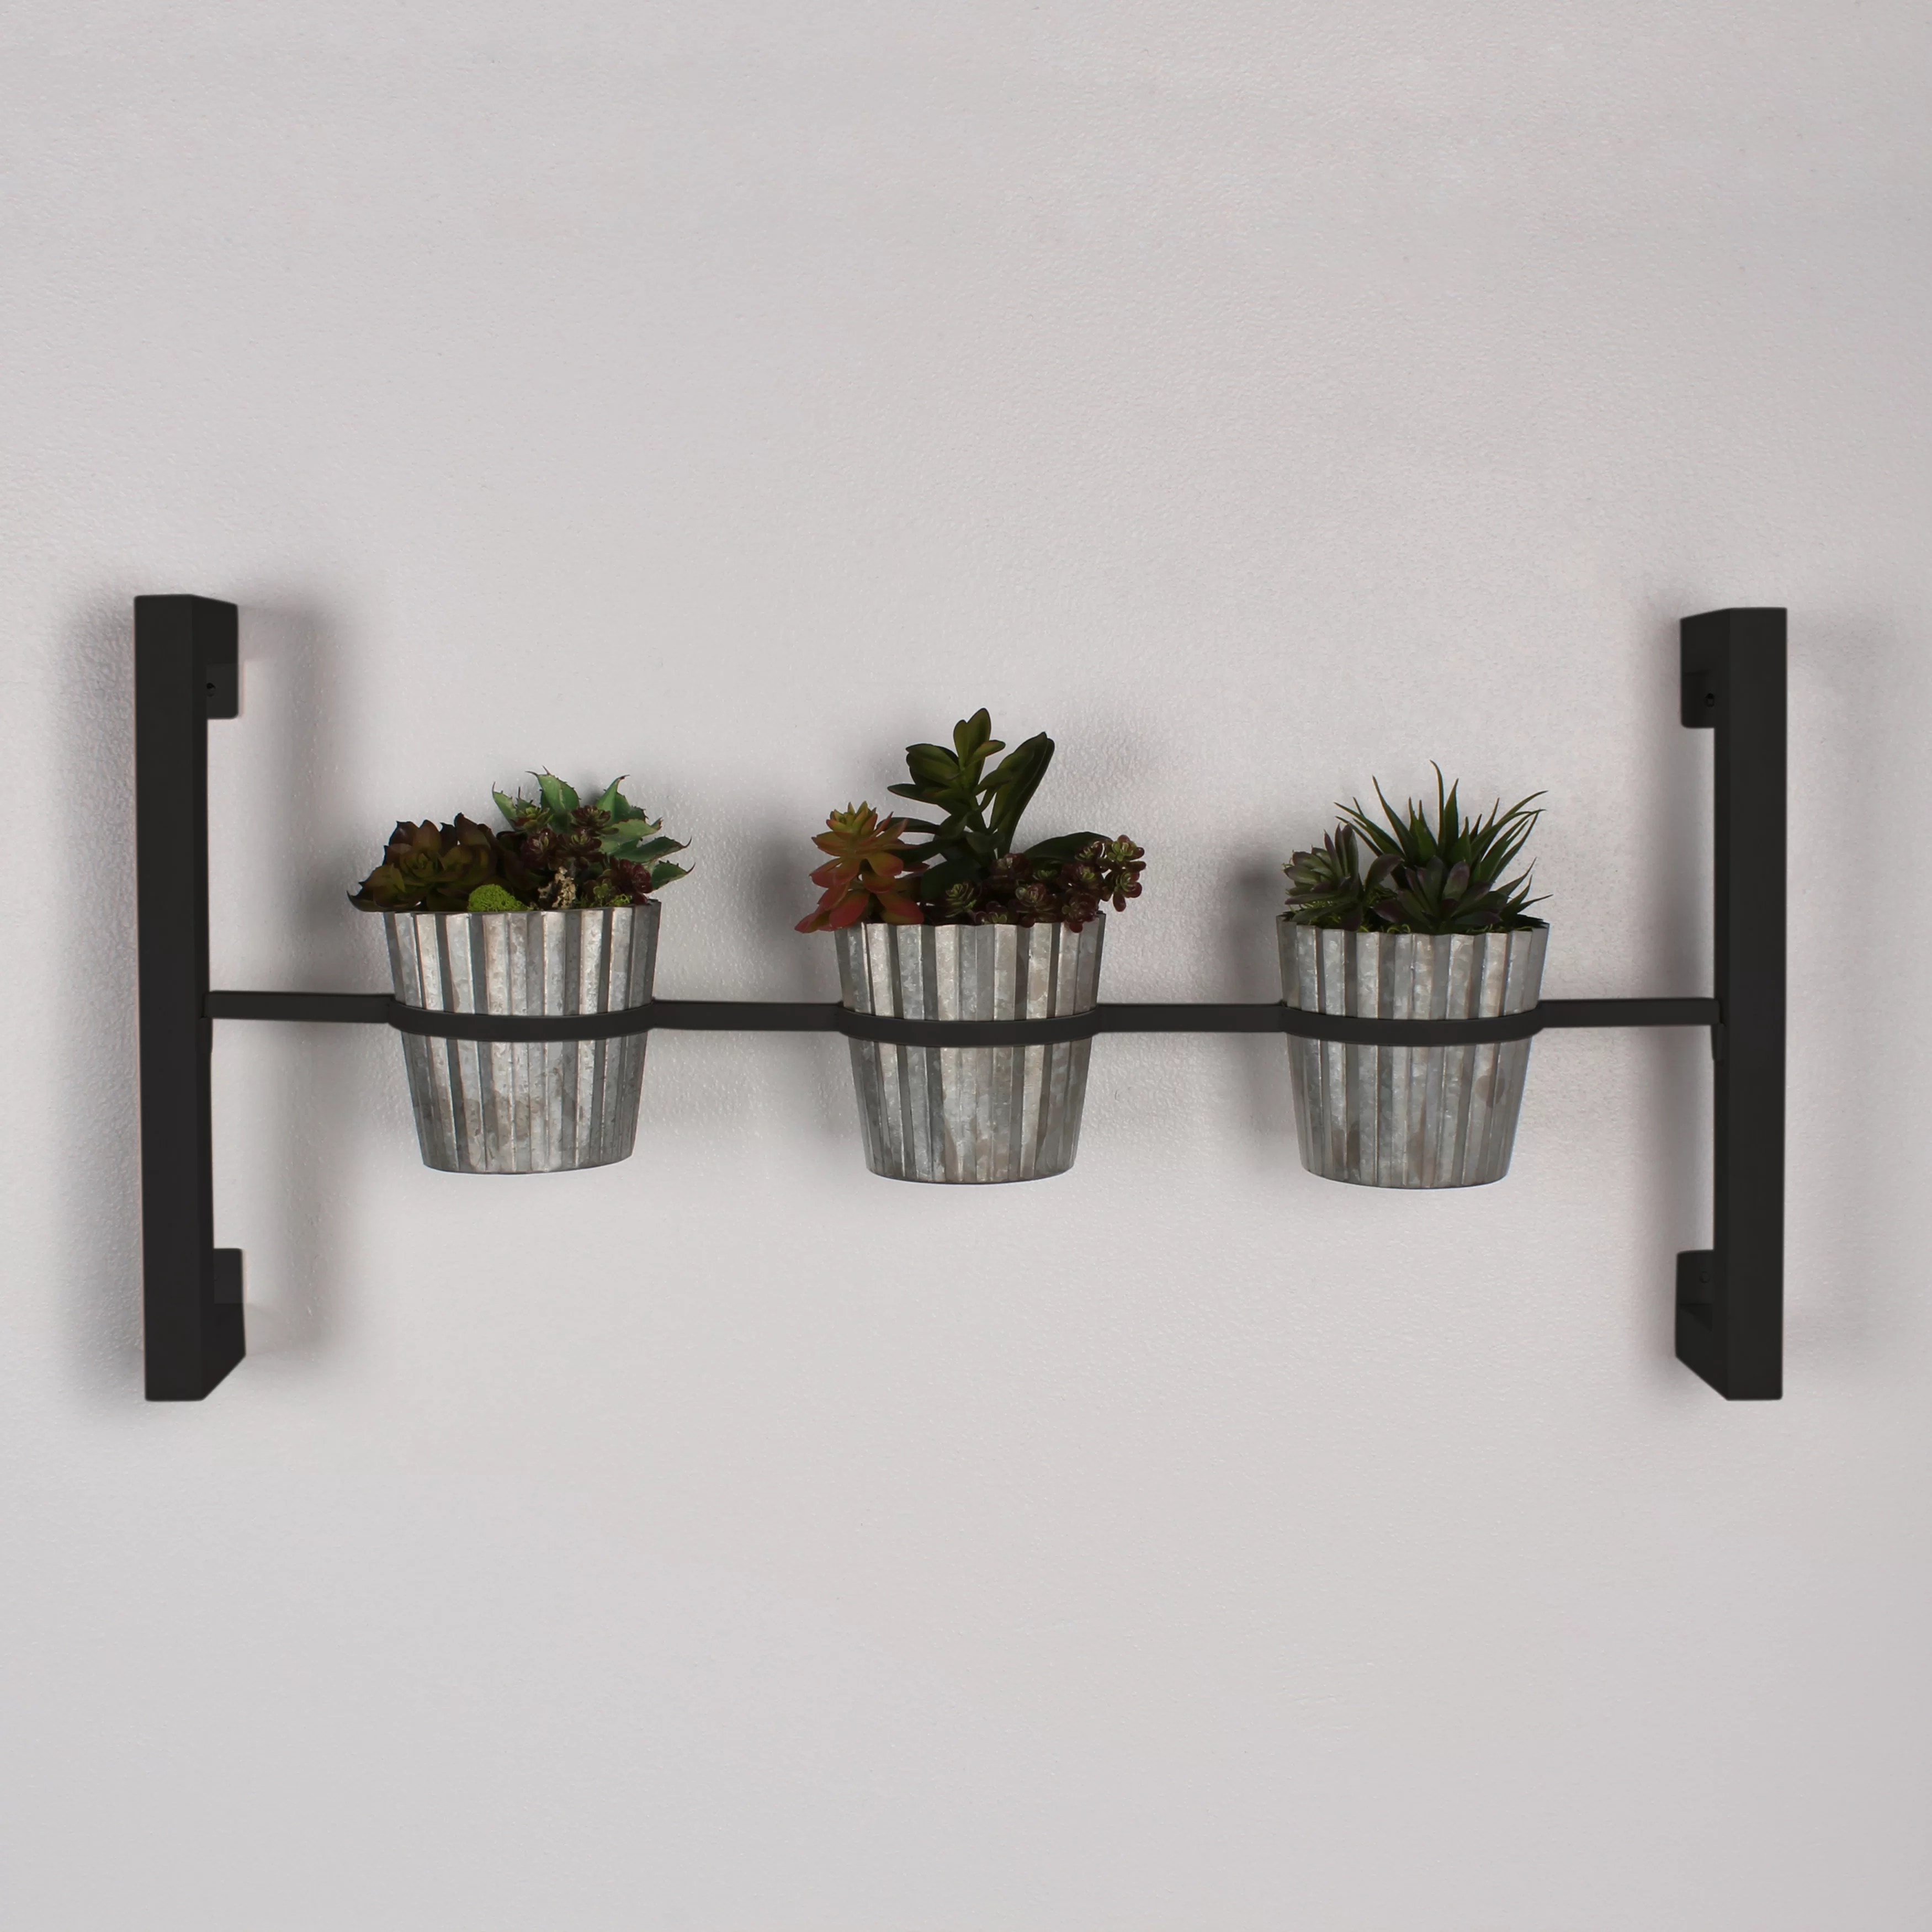 Outdoor Wall Hanging Planters Kate And Laurel Groves 4 Piece Rectangular Wall Mounted